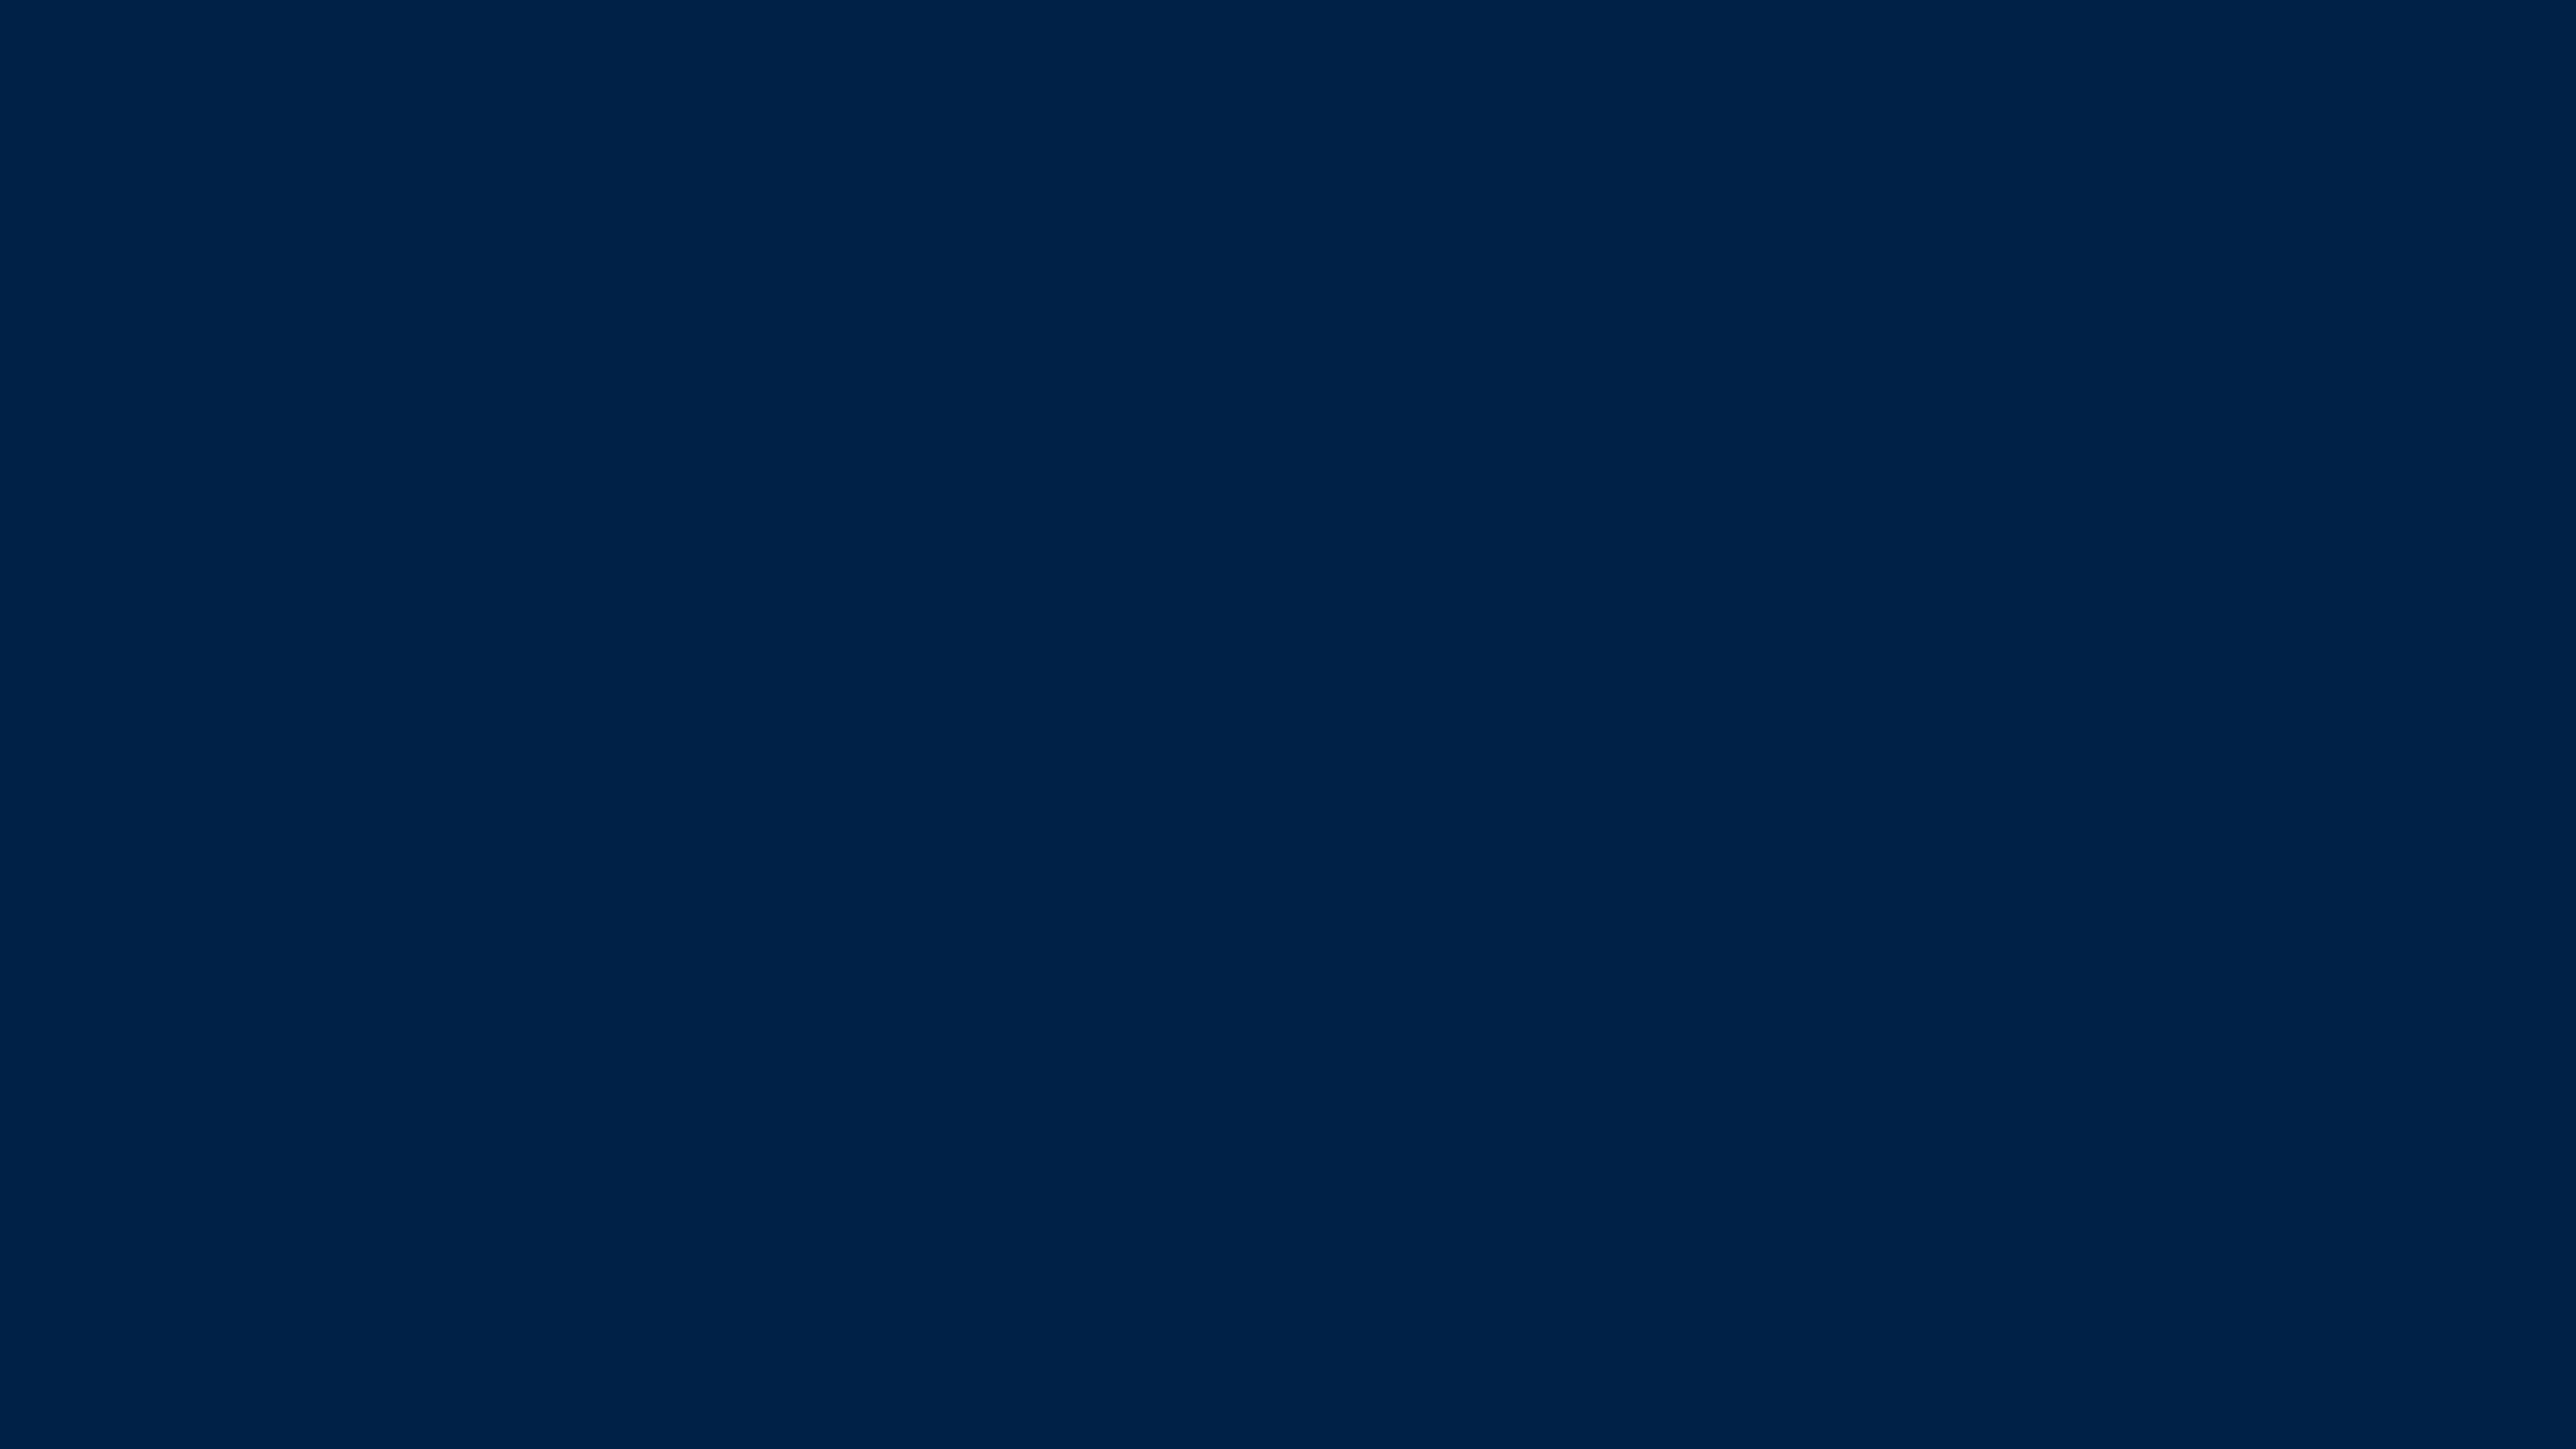 3840x2160 Oxford Blue Solid Color Background